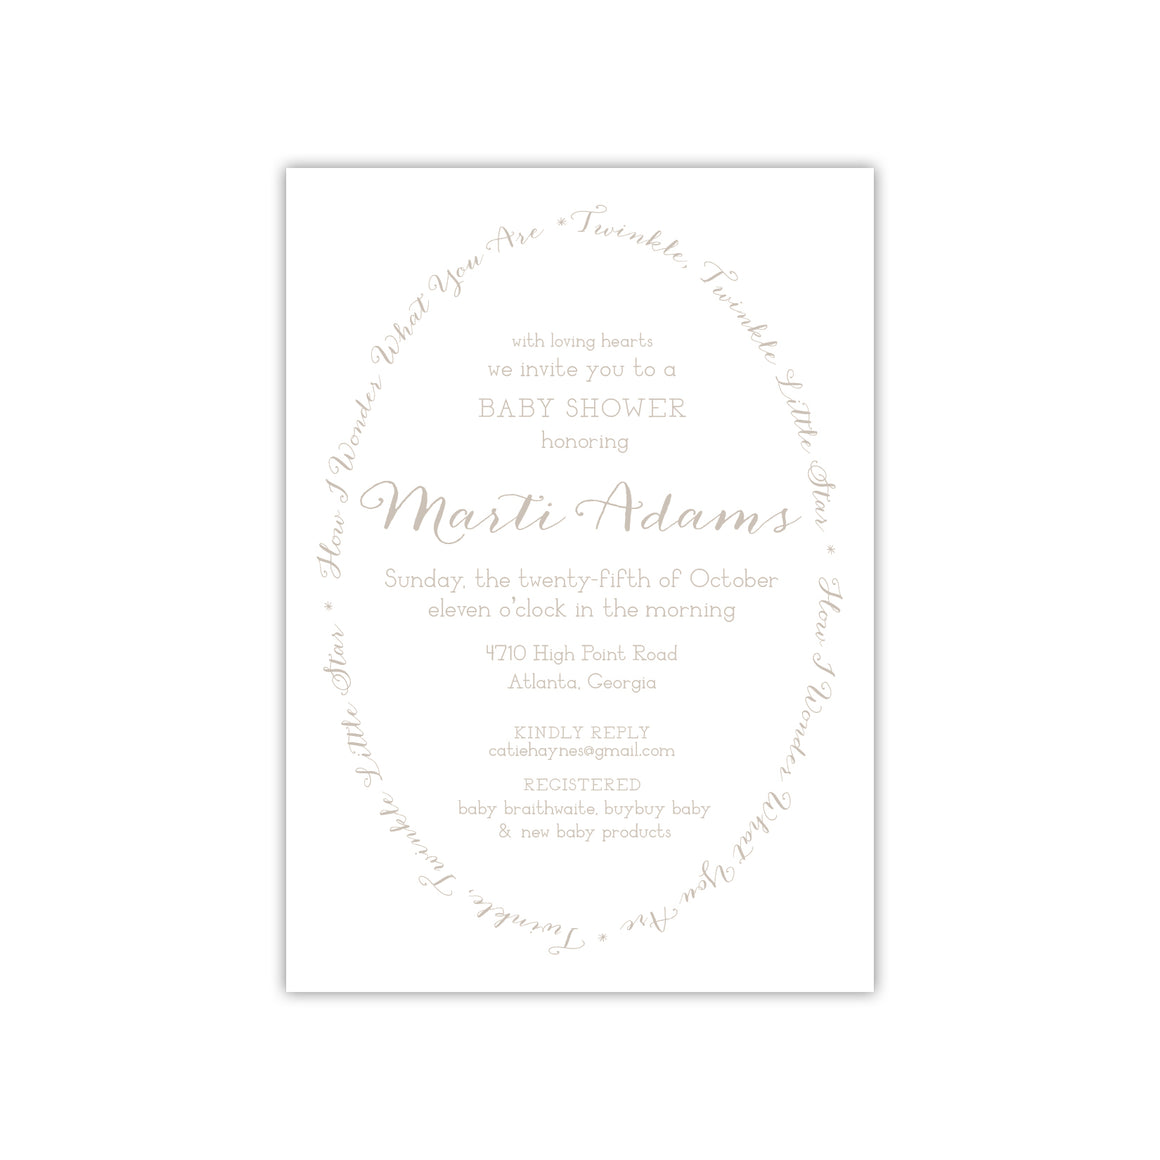 Oval Script Baby Shower Invitation